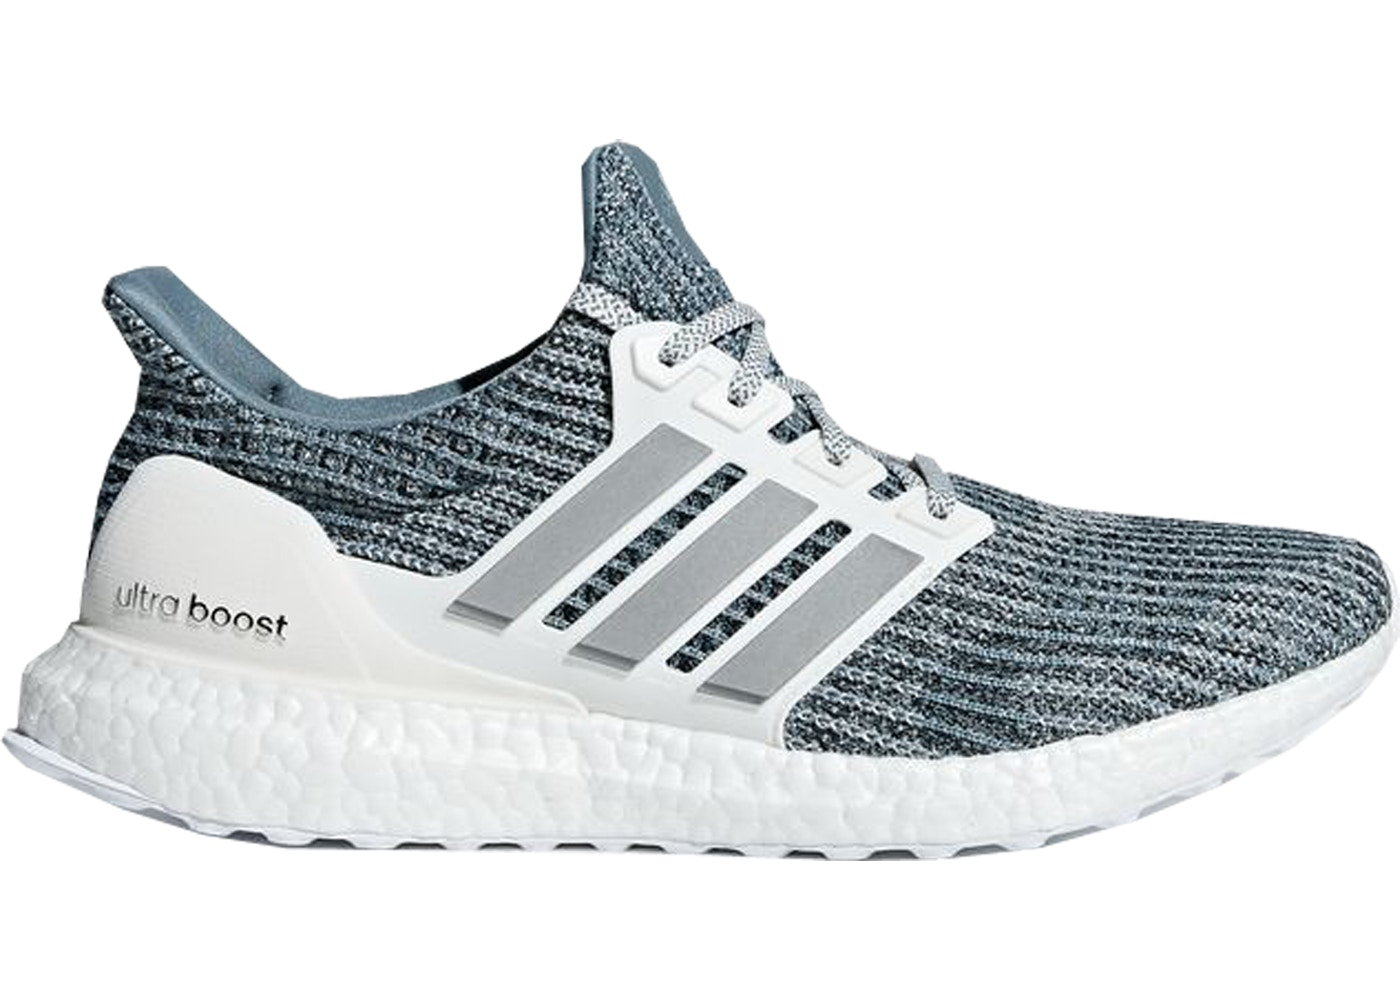 fee38d458 Buy adidas Ultra Boost Size 6 Shoes   Deadstock Sneakers